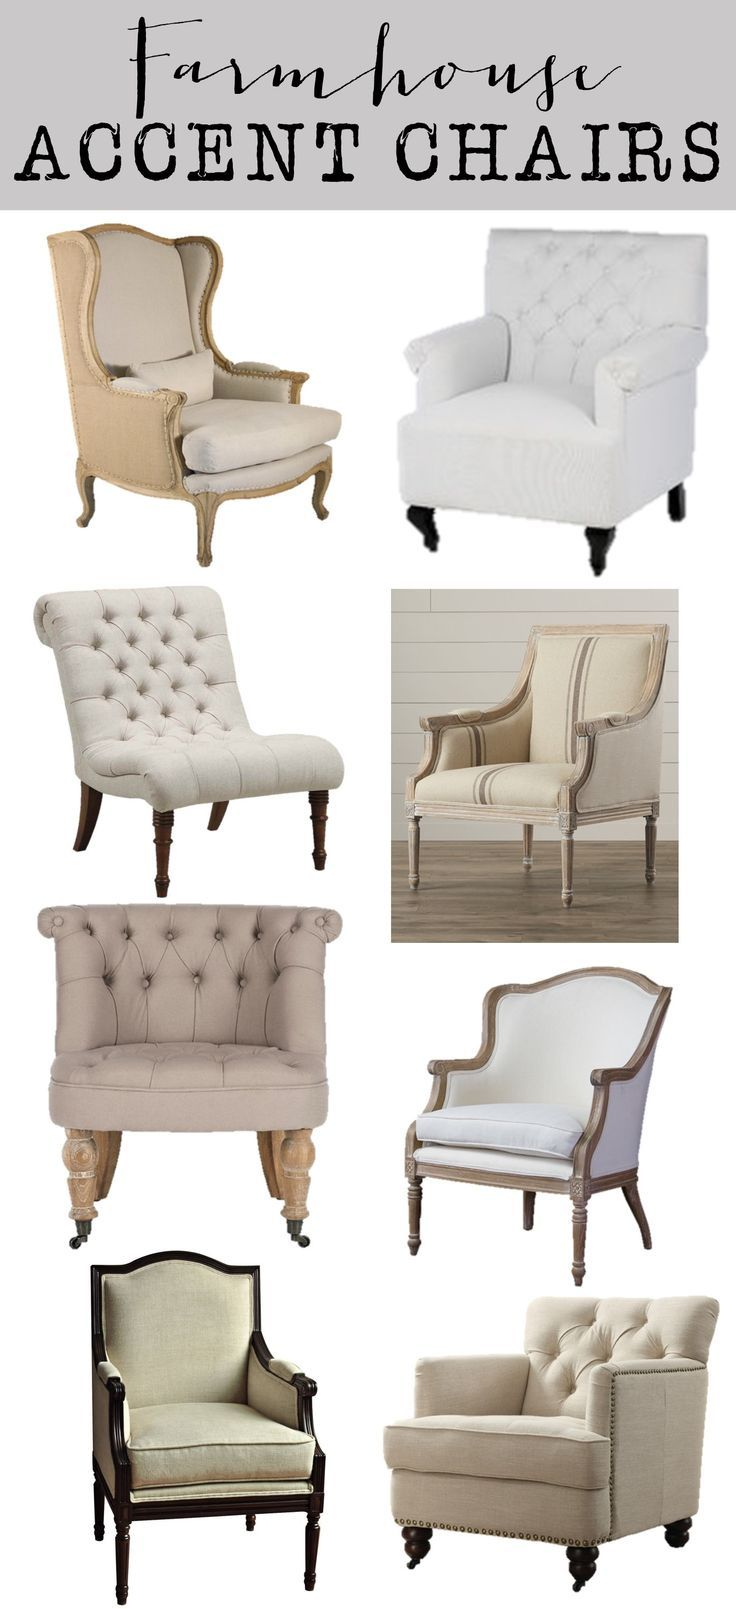 friday favorites farmhouse accent chairs house hargrove modern table neutral linen threshold mango wood ashley outdoor recliner half moon with storage counter height breakfast